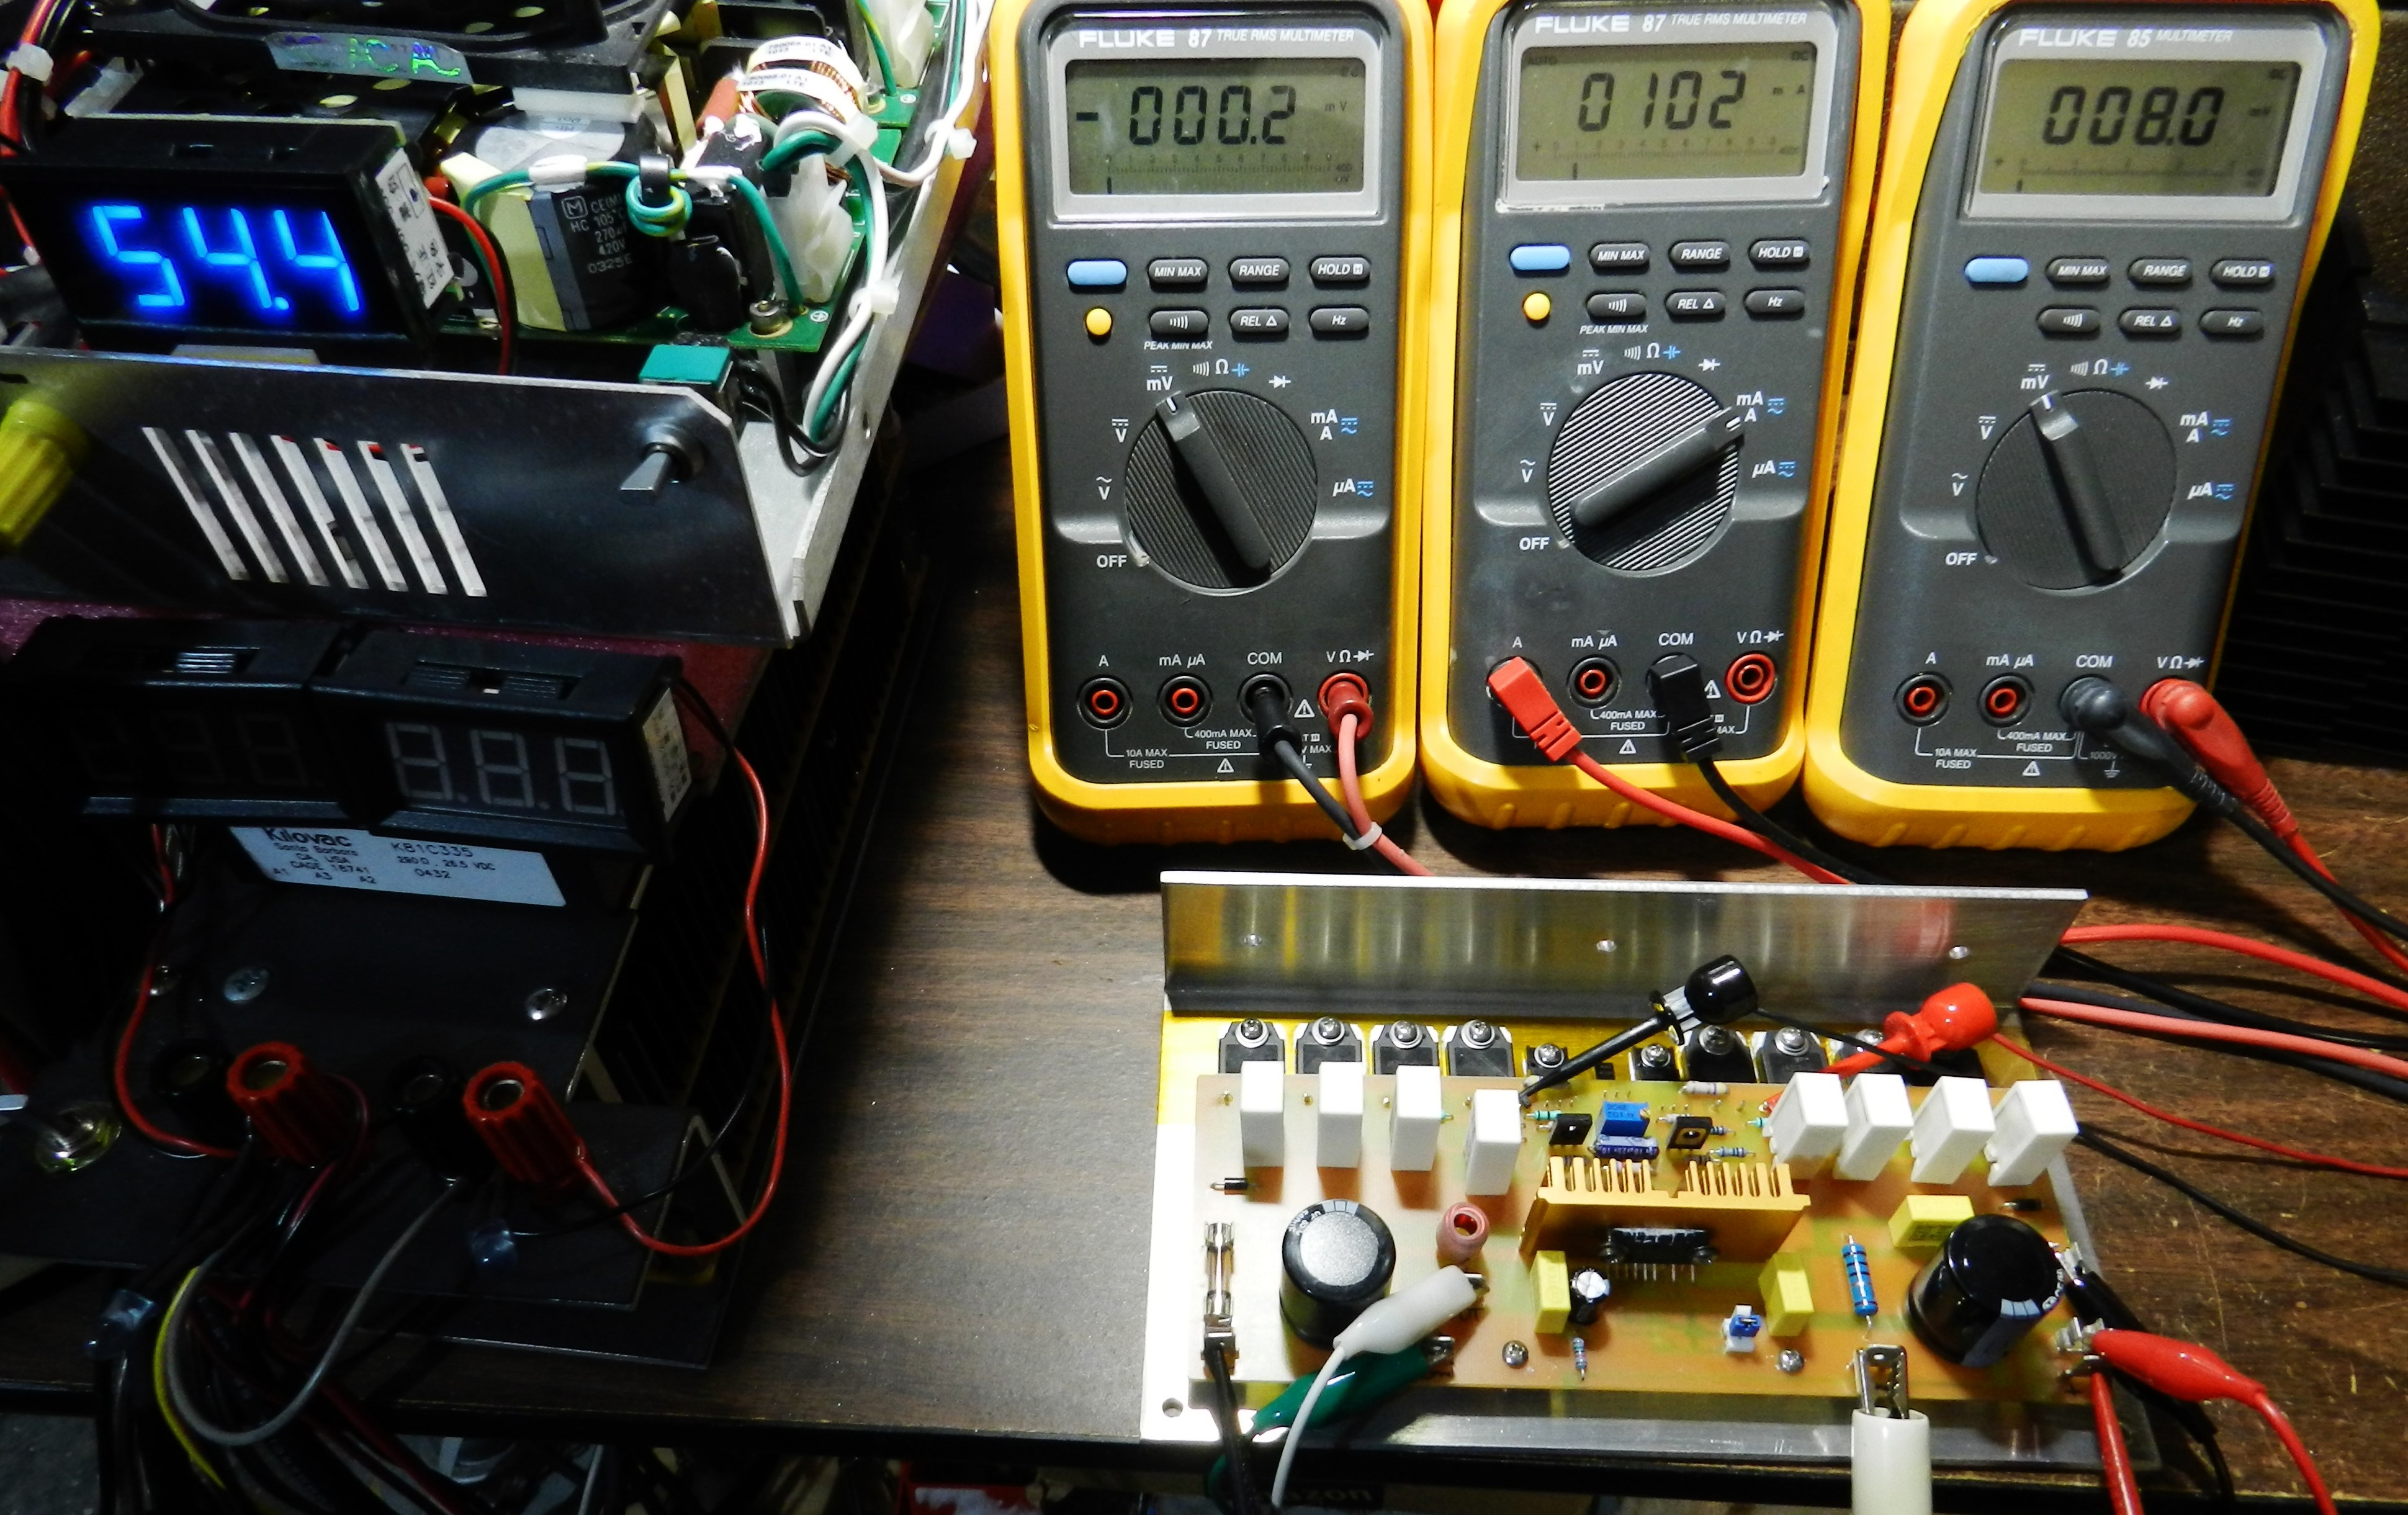 Project 15 Buildaudioamps Circuit Of Sziklai Pair Also The Gain S Is Dmm On Left Side Picture Reading 02mv Dc Offset Voltage Amplifier In Middle 102ma Current Drawn